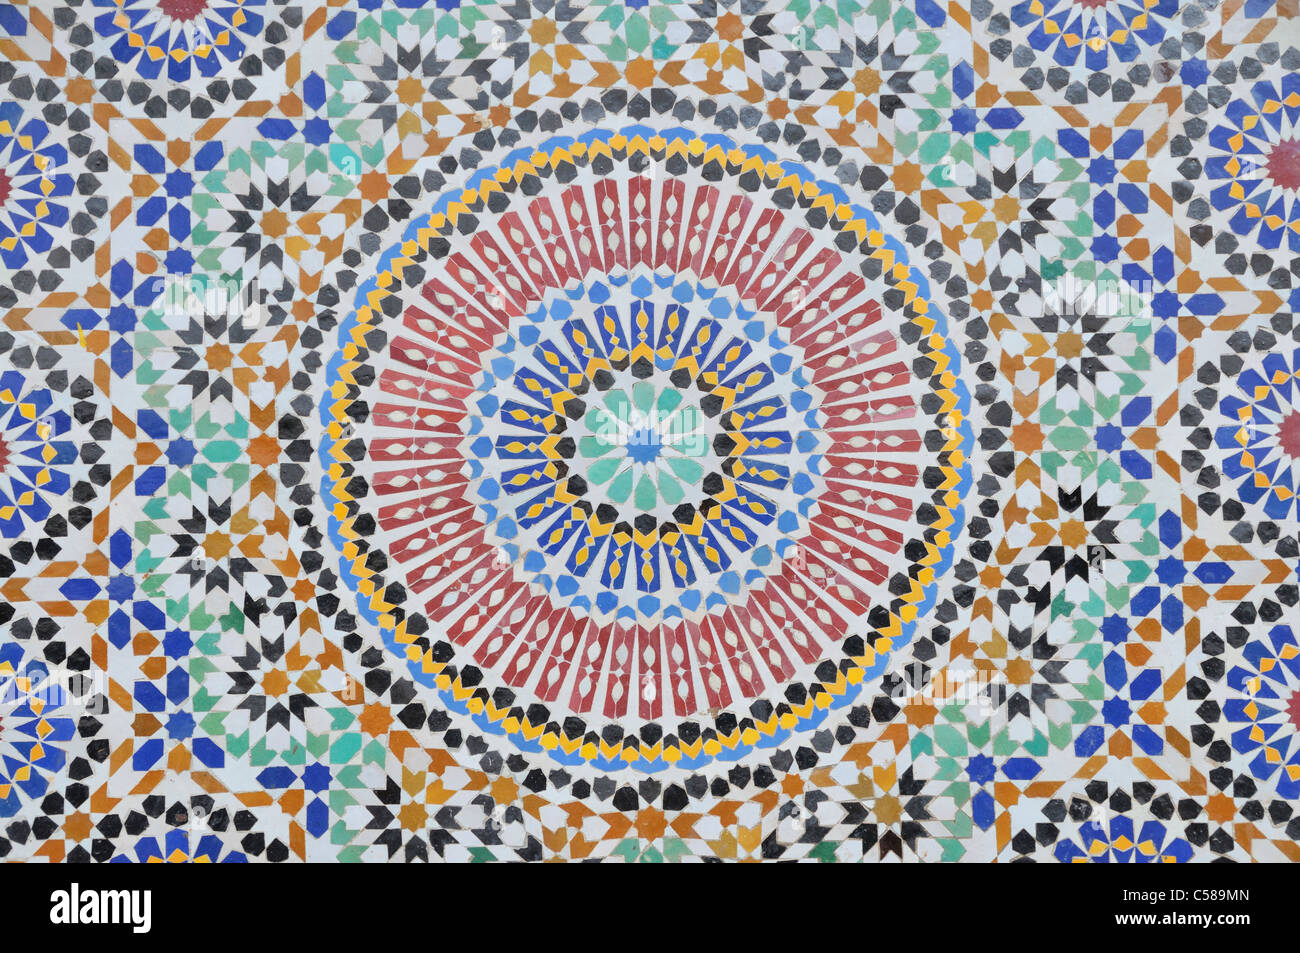 Africa marocco maghreb nord africa sefrou ornamento